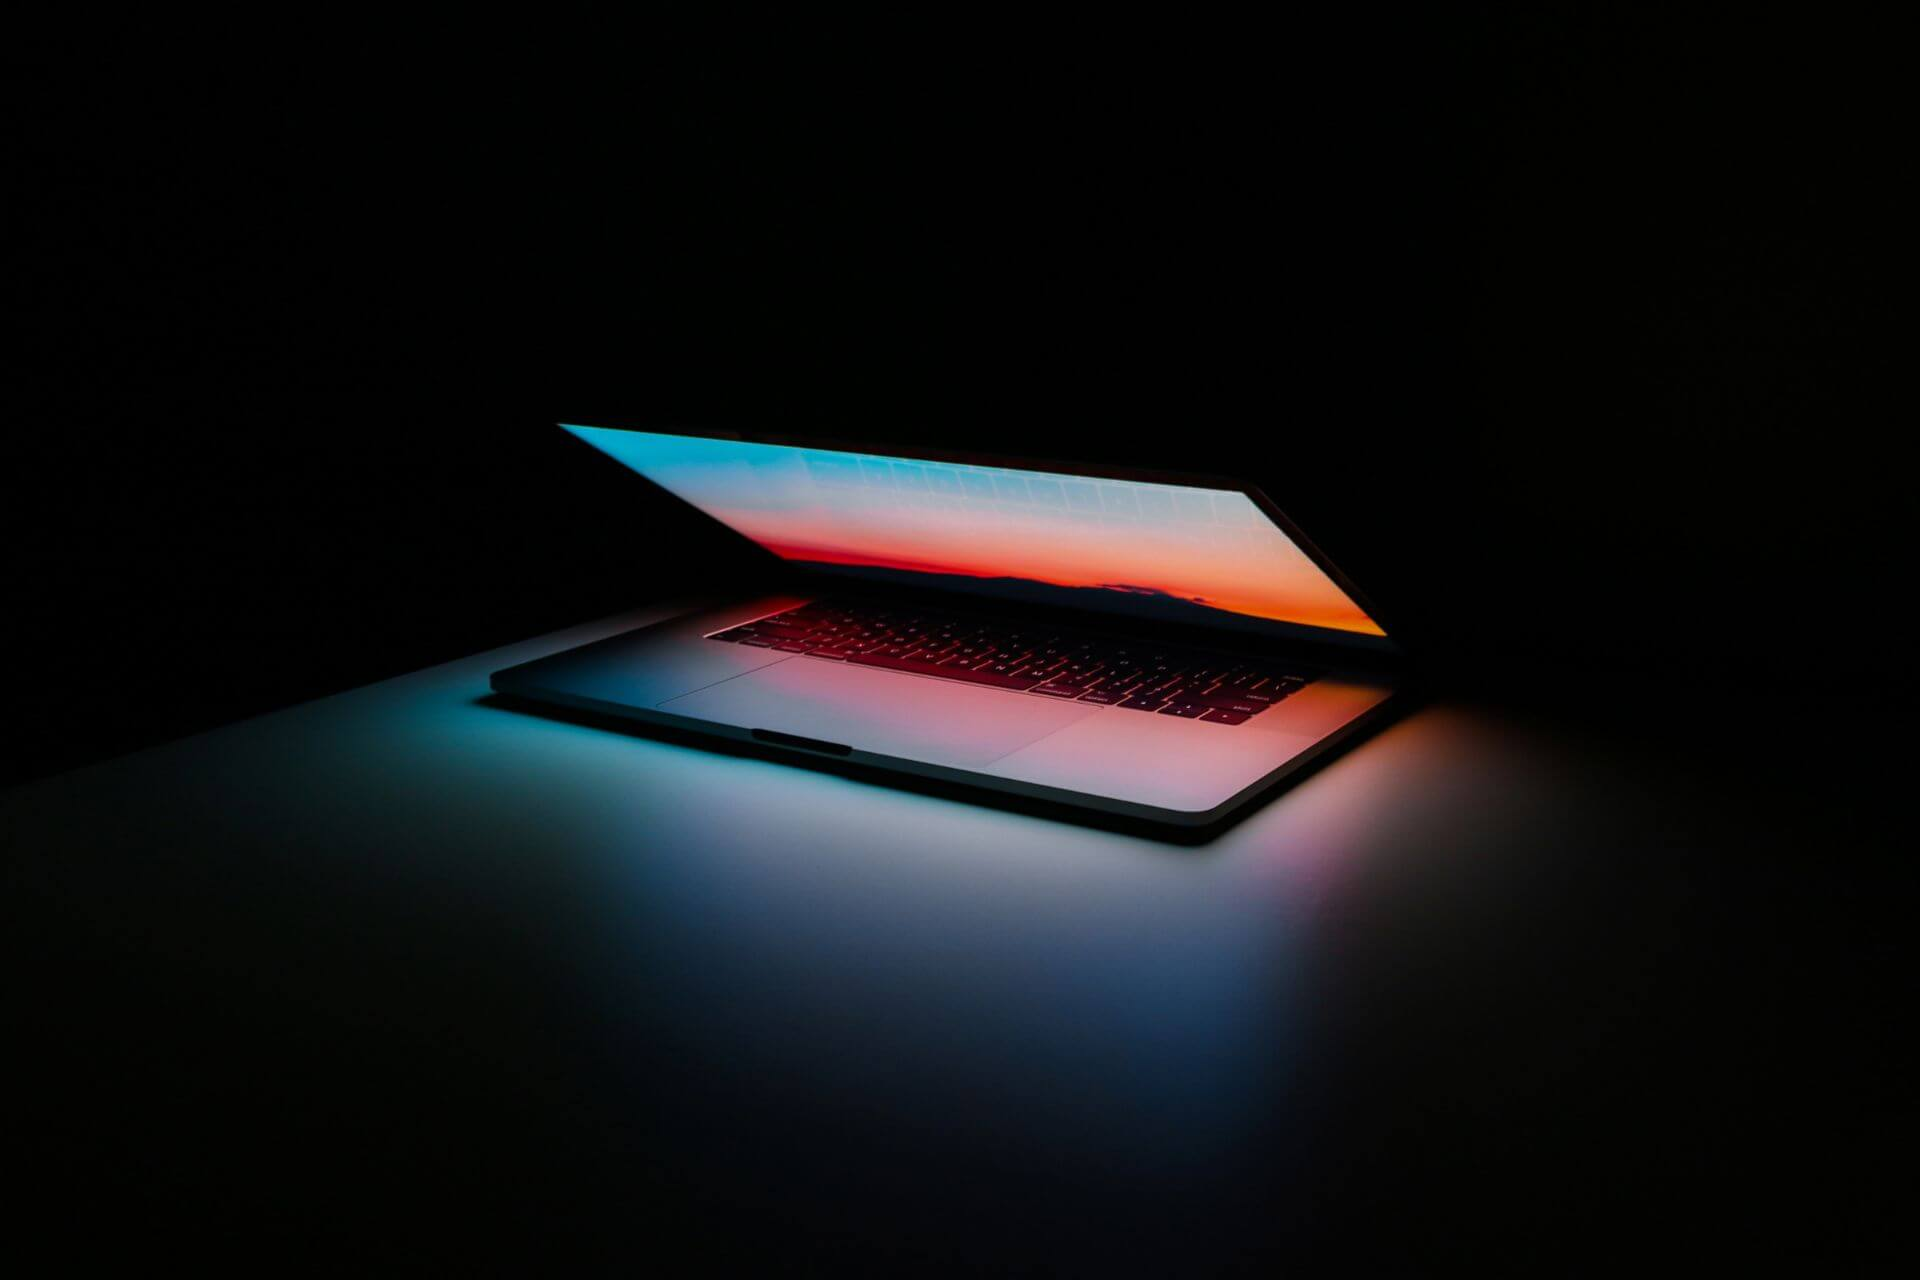 Laptop slightly opening glowing a blue and orange colour with a dark background